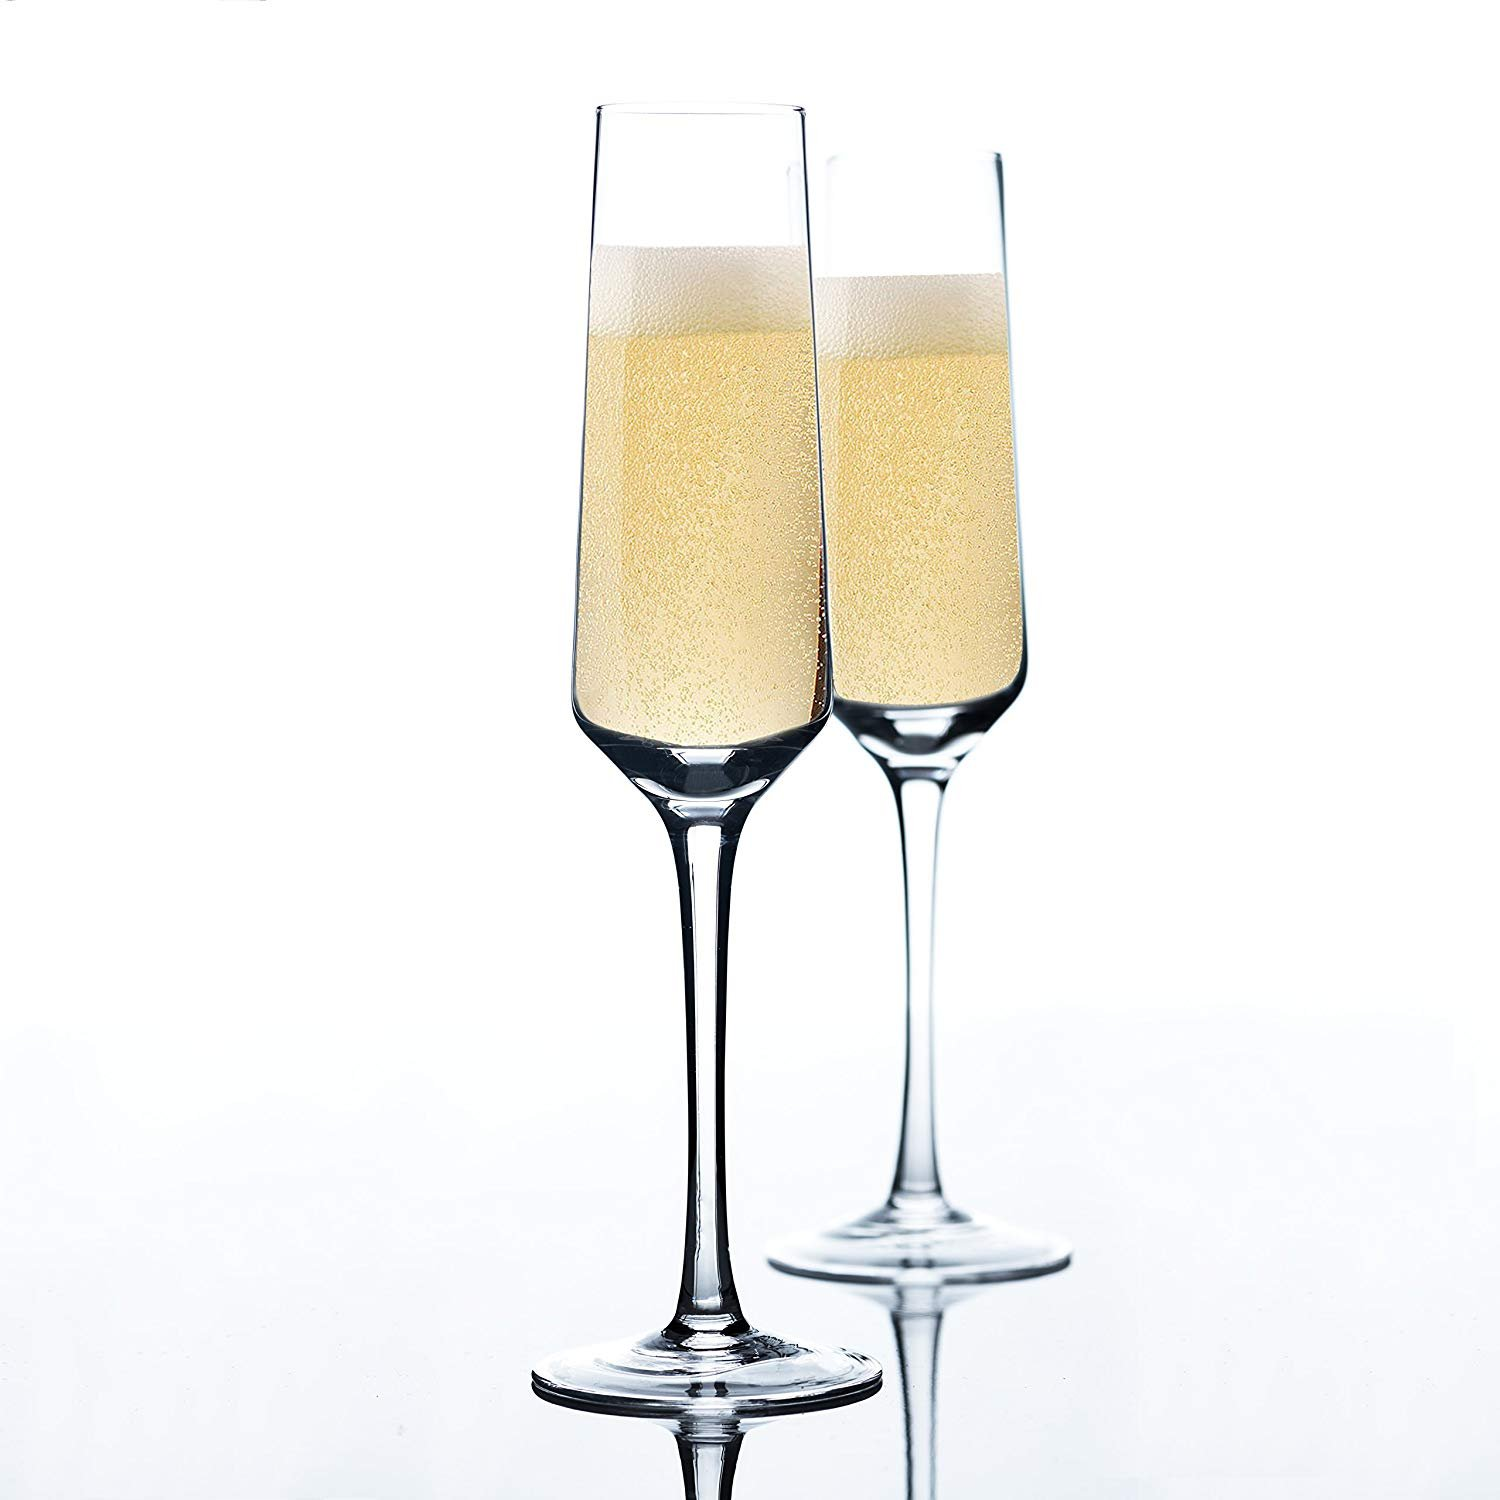 21128f2dccf Hand Blown Champagne Flutes -100% Lead Free Crystal Clear Set of 2  Champagne Flute Glasses, Perfect Glass Party Cups